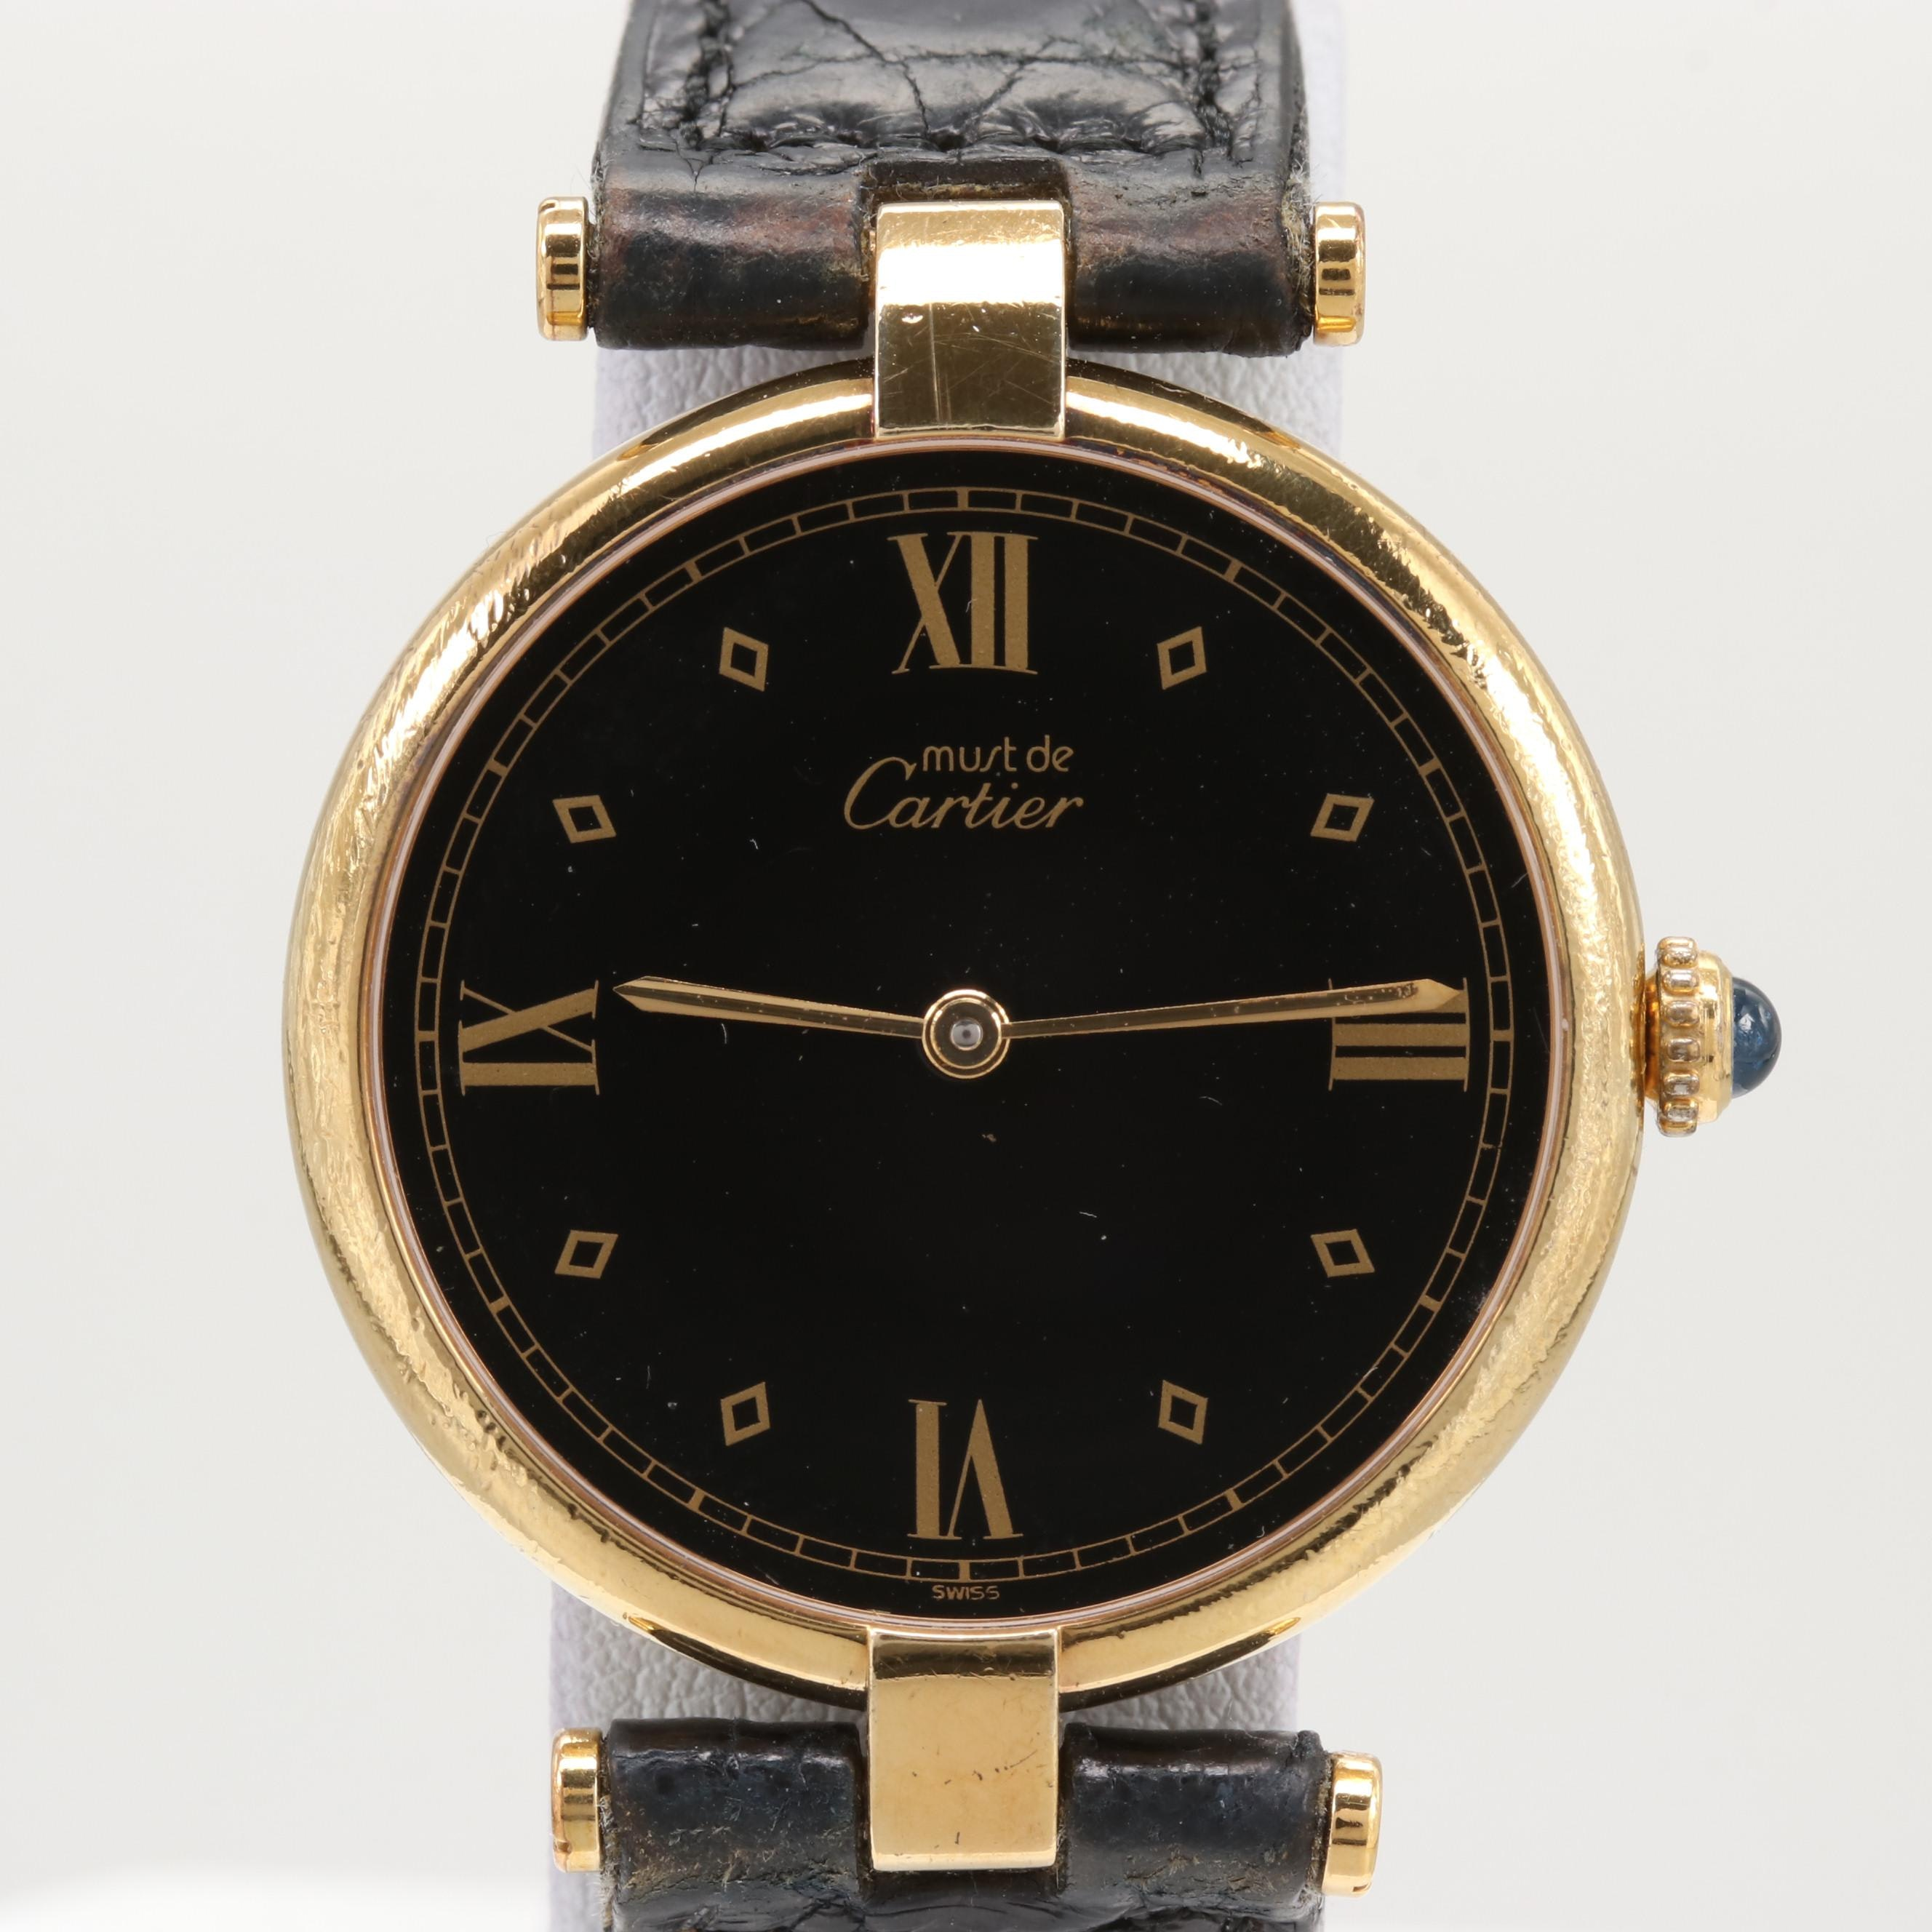 Cartier Must de Cartier Vermeil Quartz Wristwatch